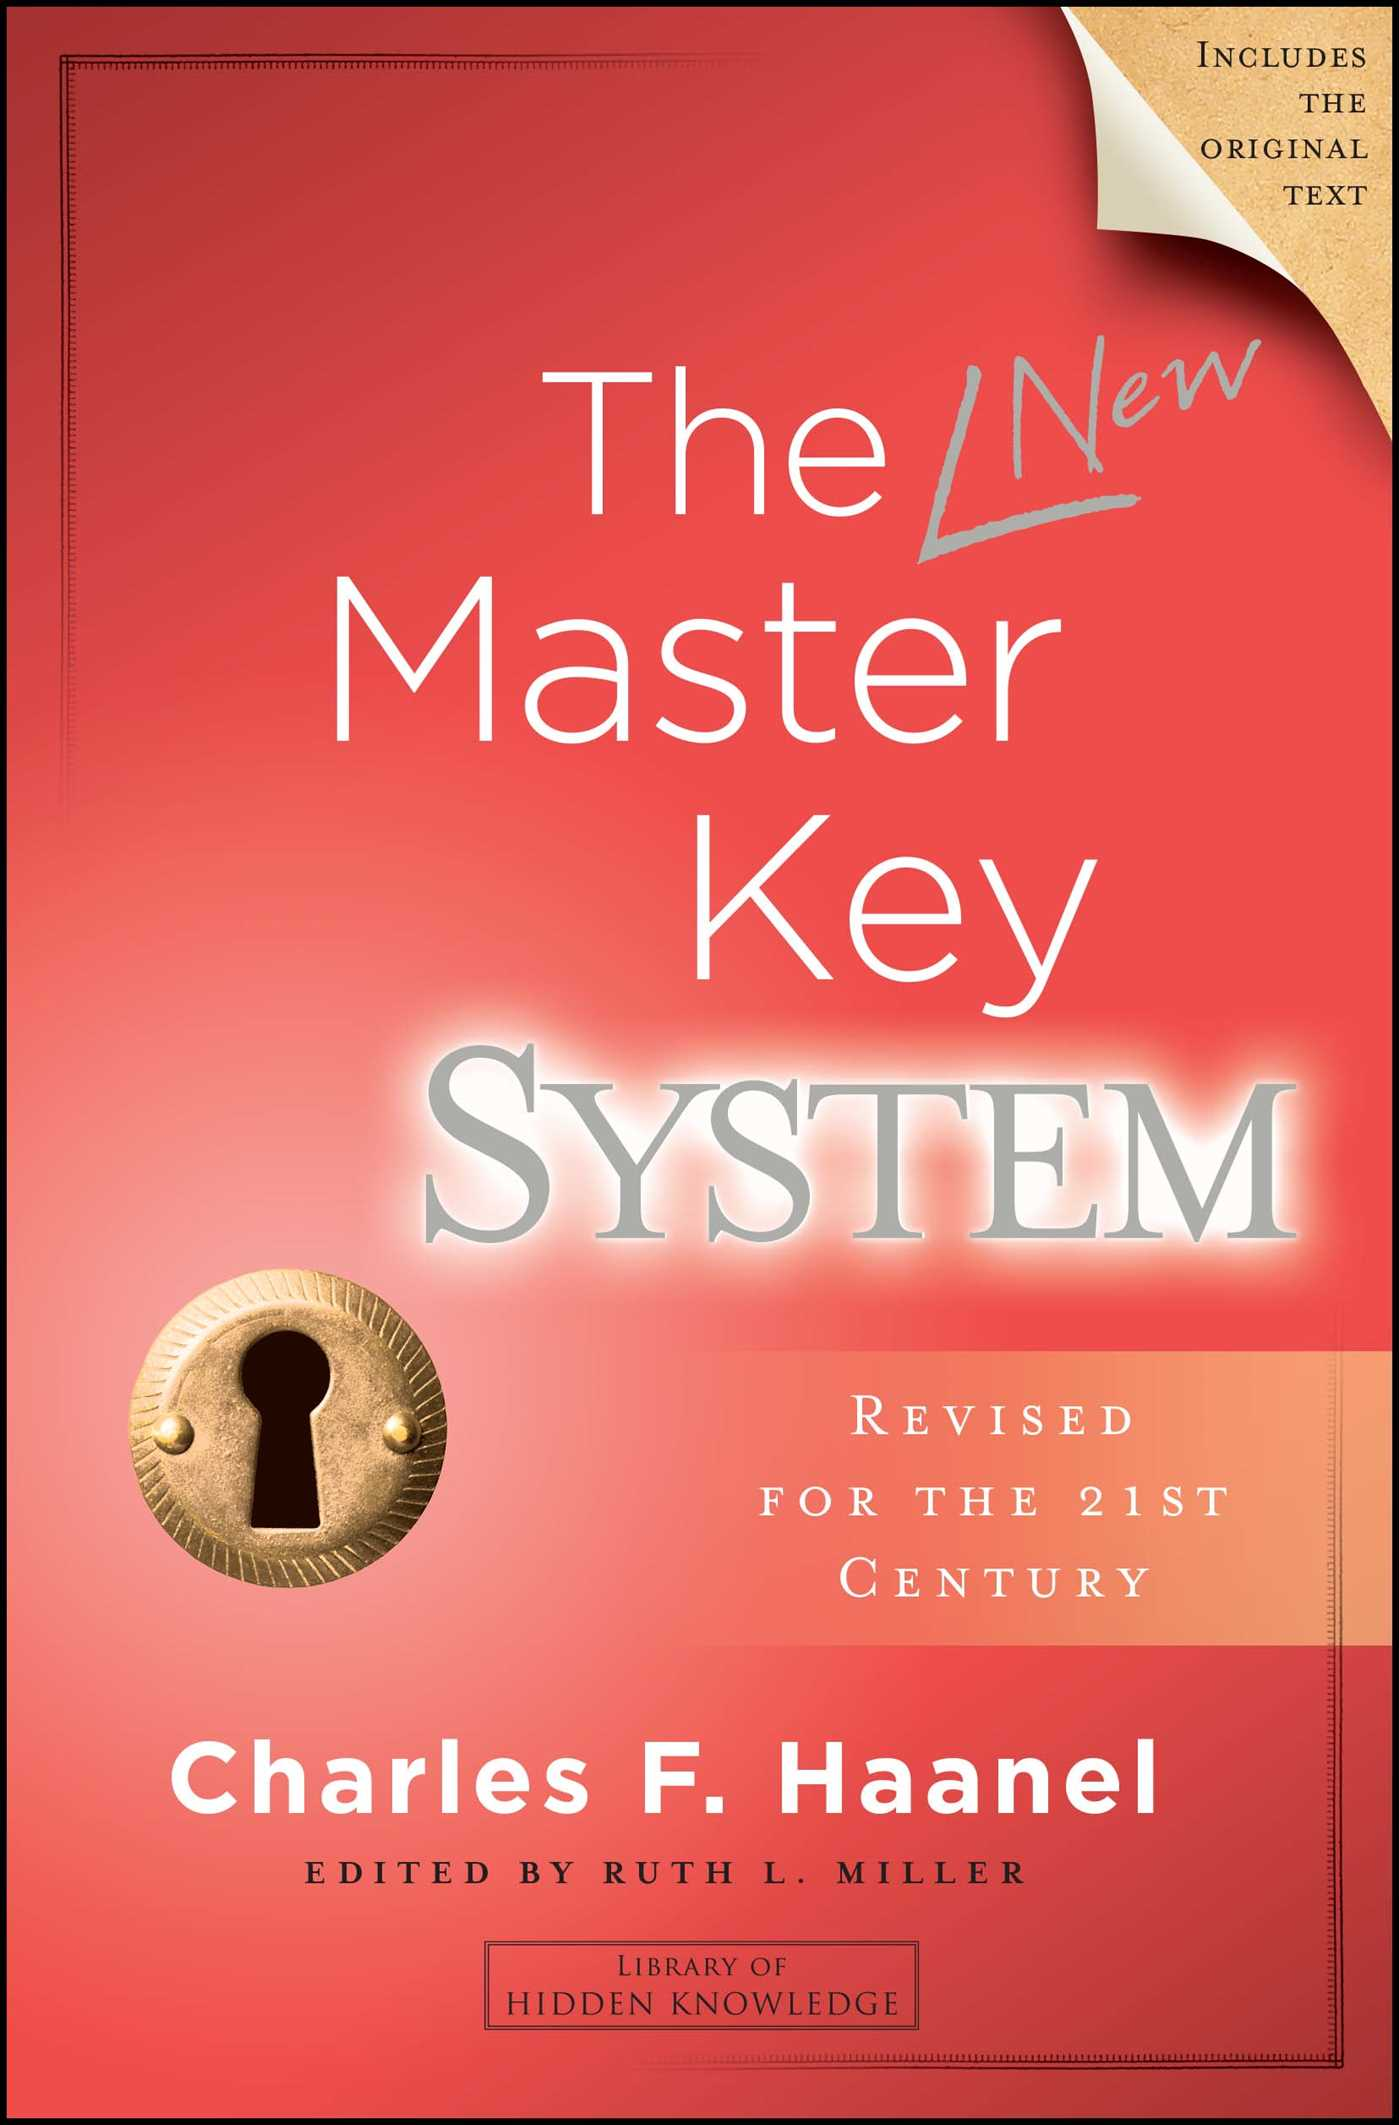 The new master key system 9781582706672 hr